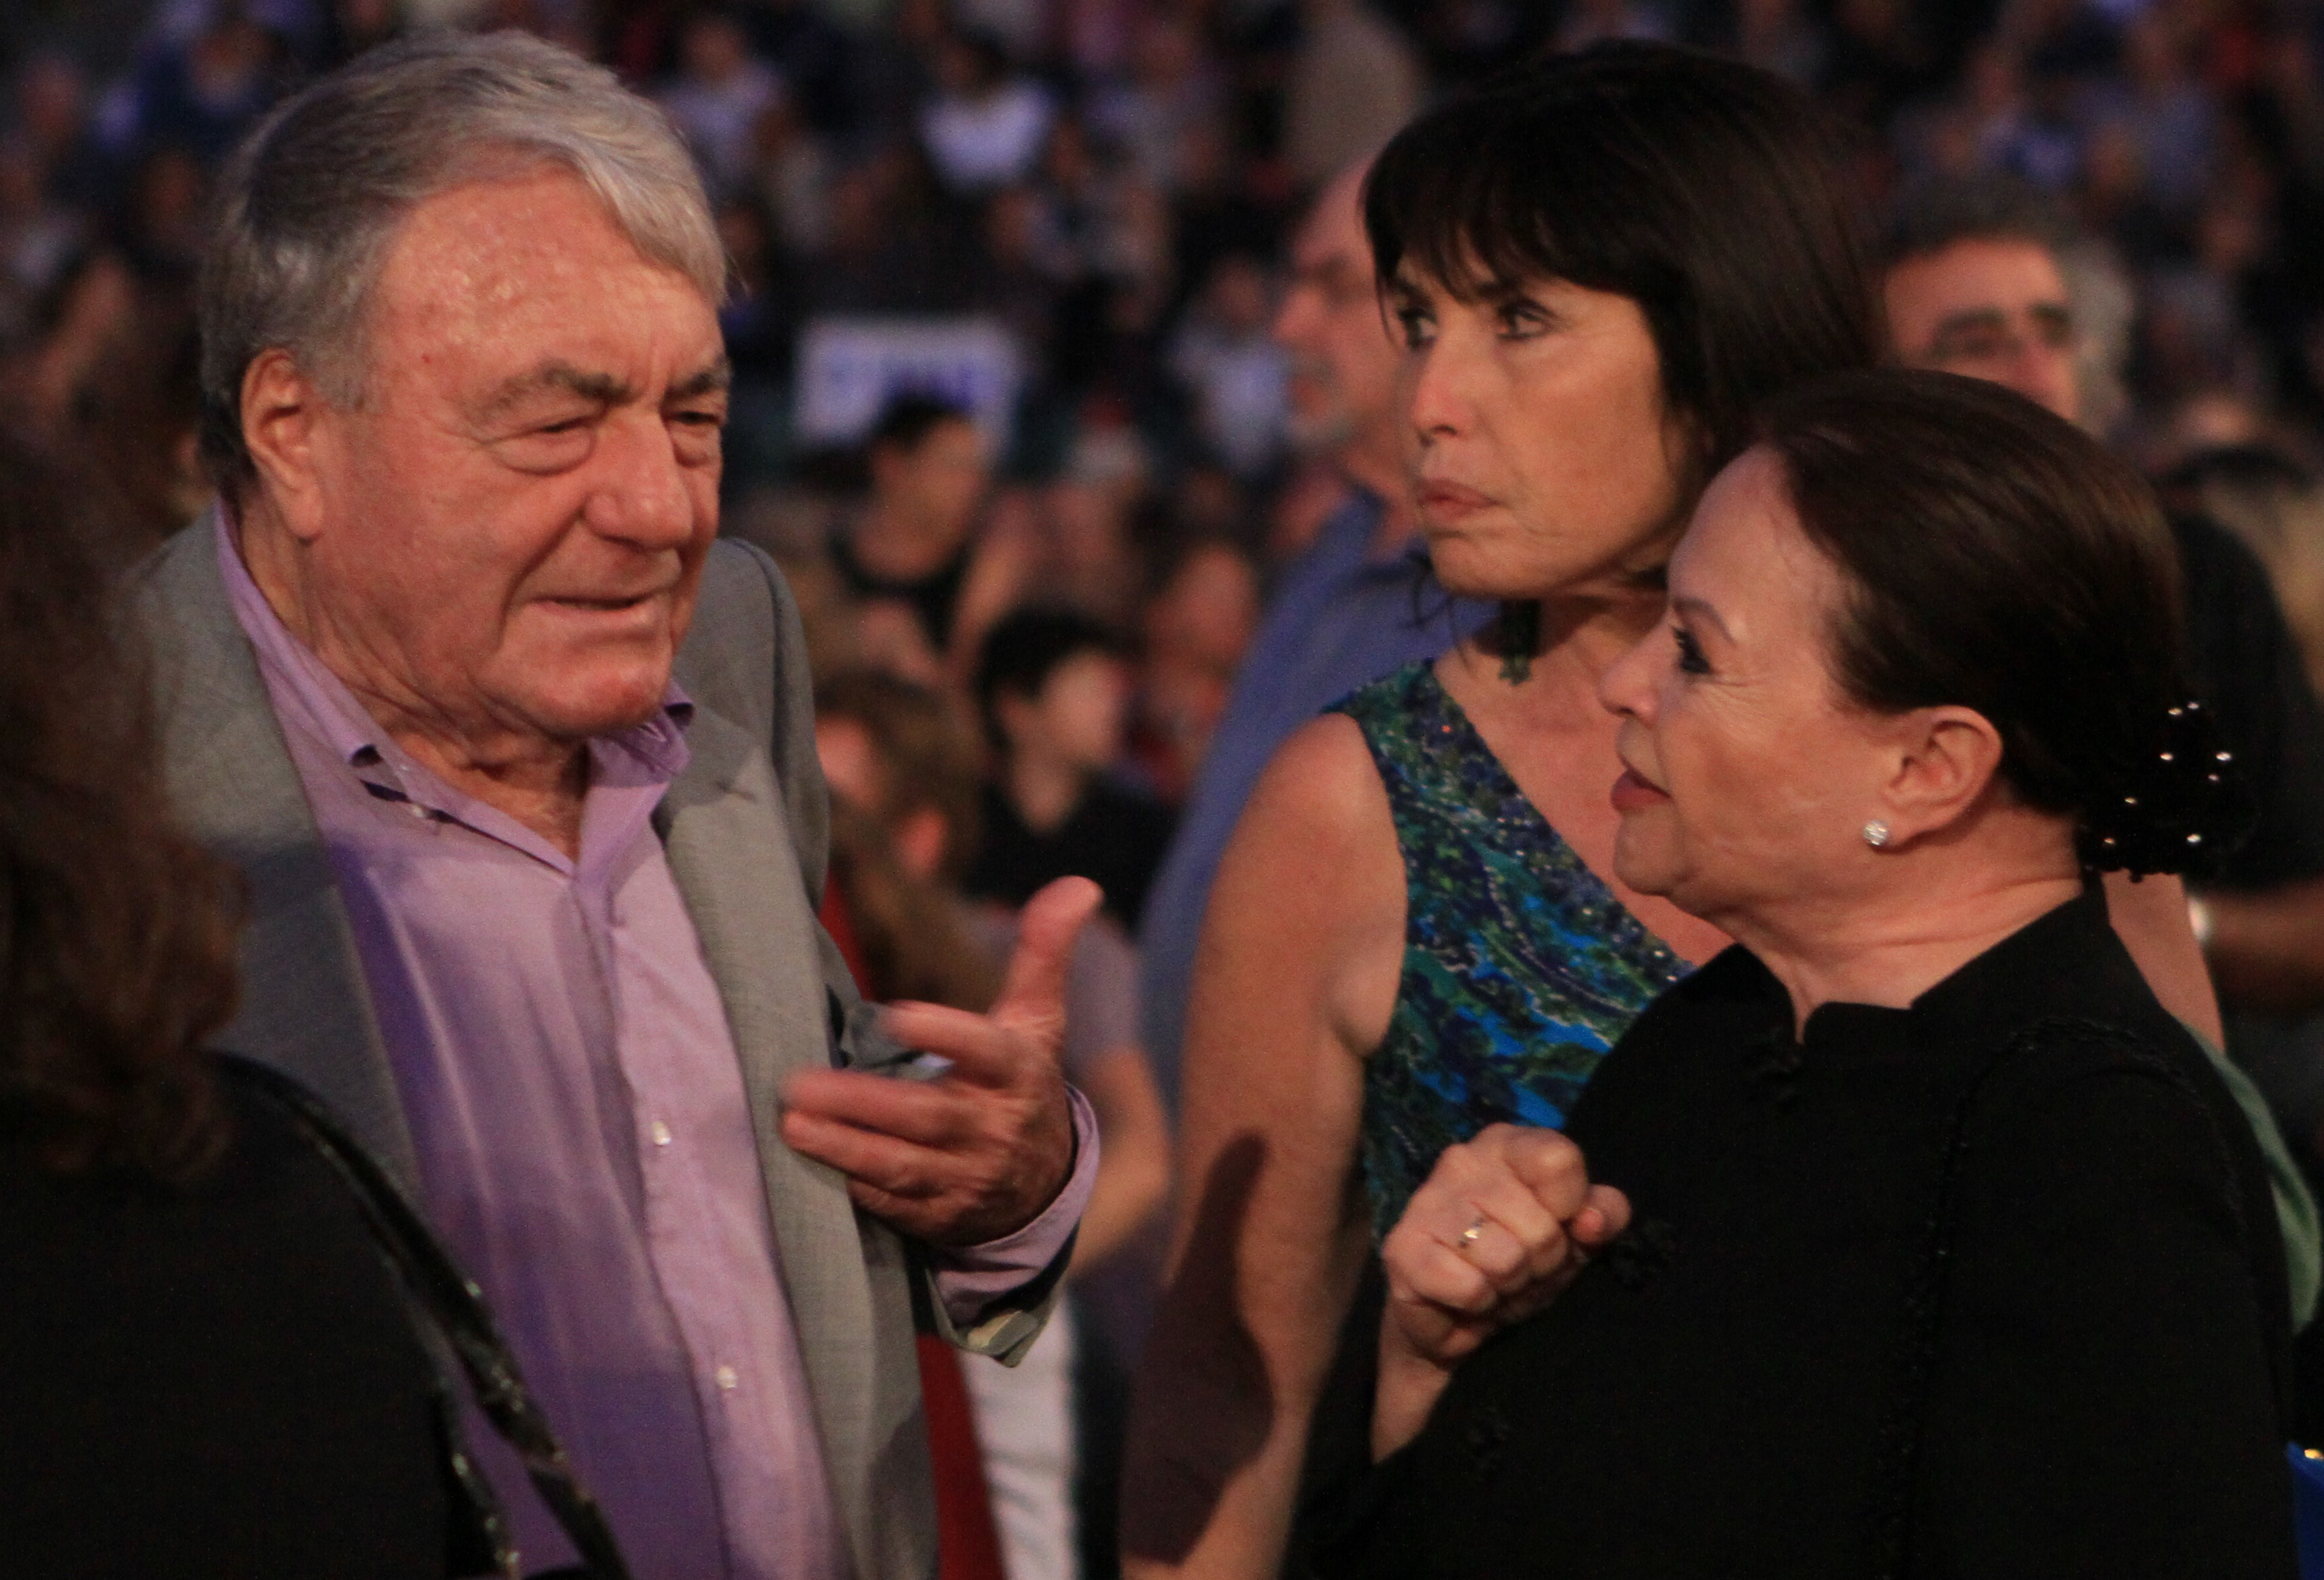 File Gila Almagor and Claude Lanzmann At Jerusalem Film Festival jpg     File Gila Almagor and Claude Lanzmann At Jerusalem Film Festival jpg